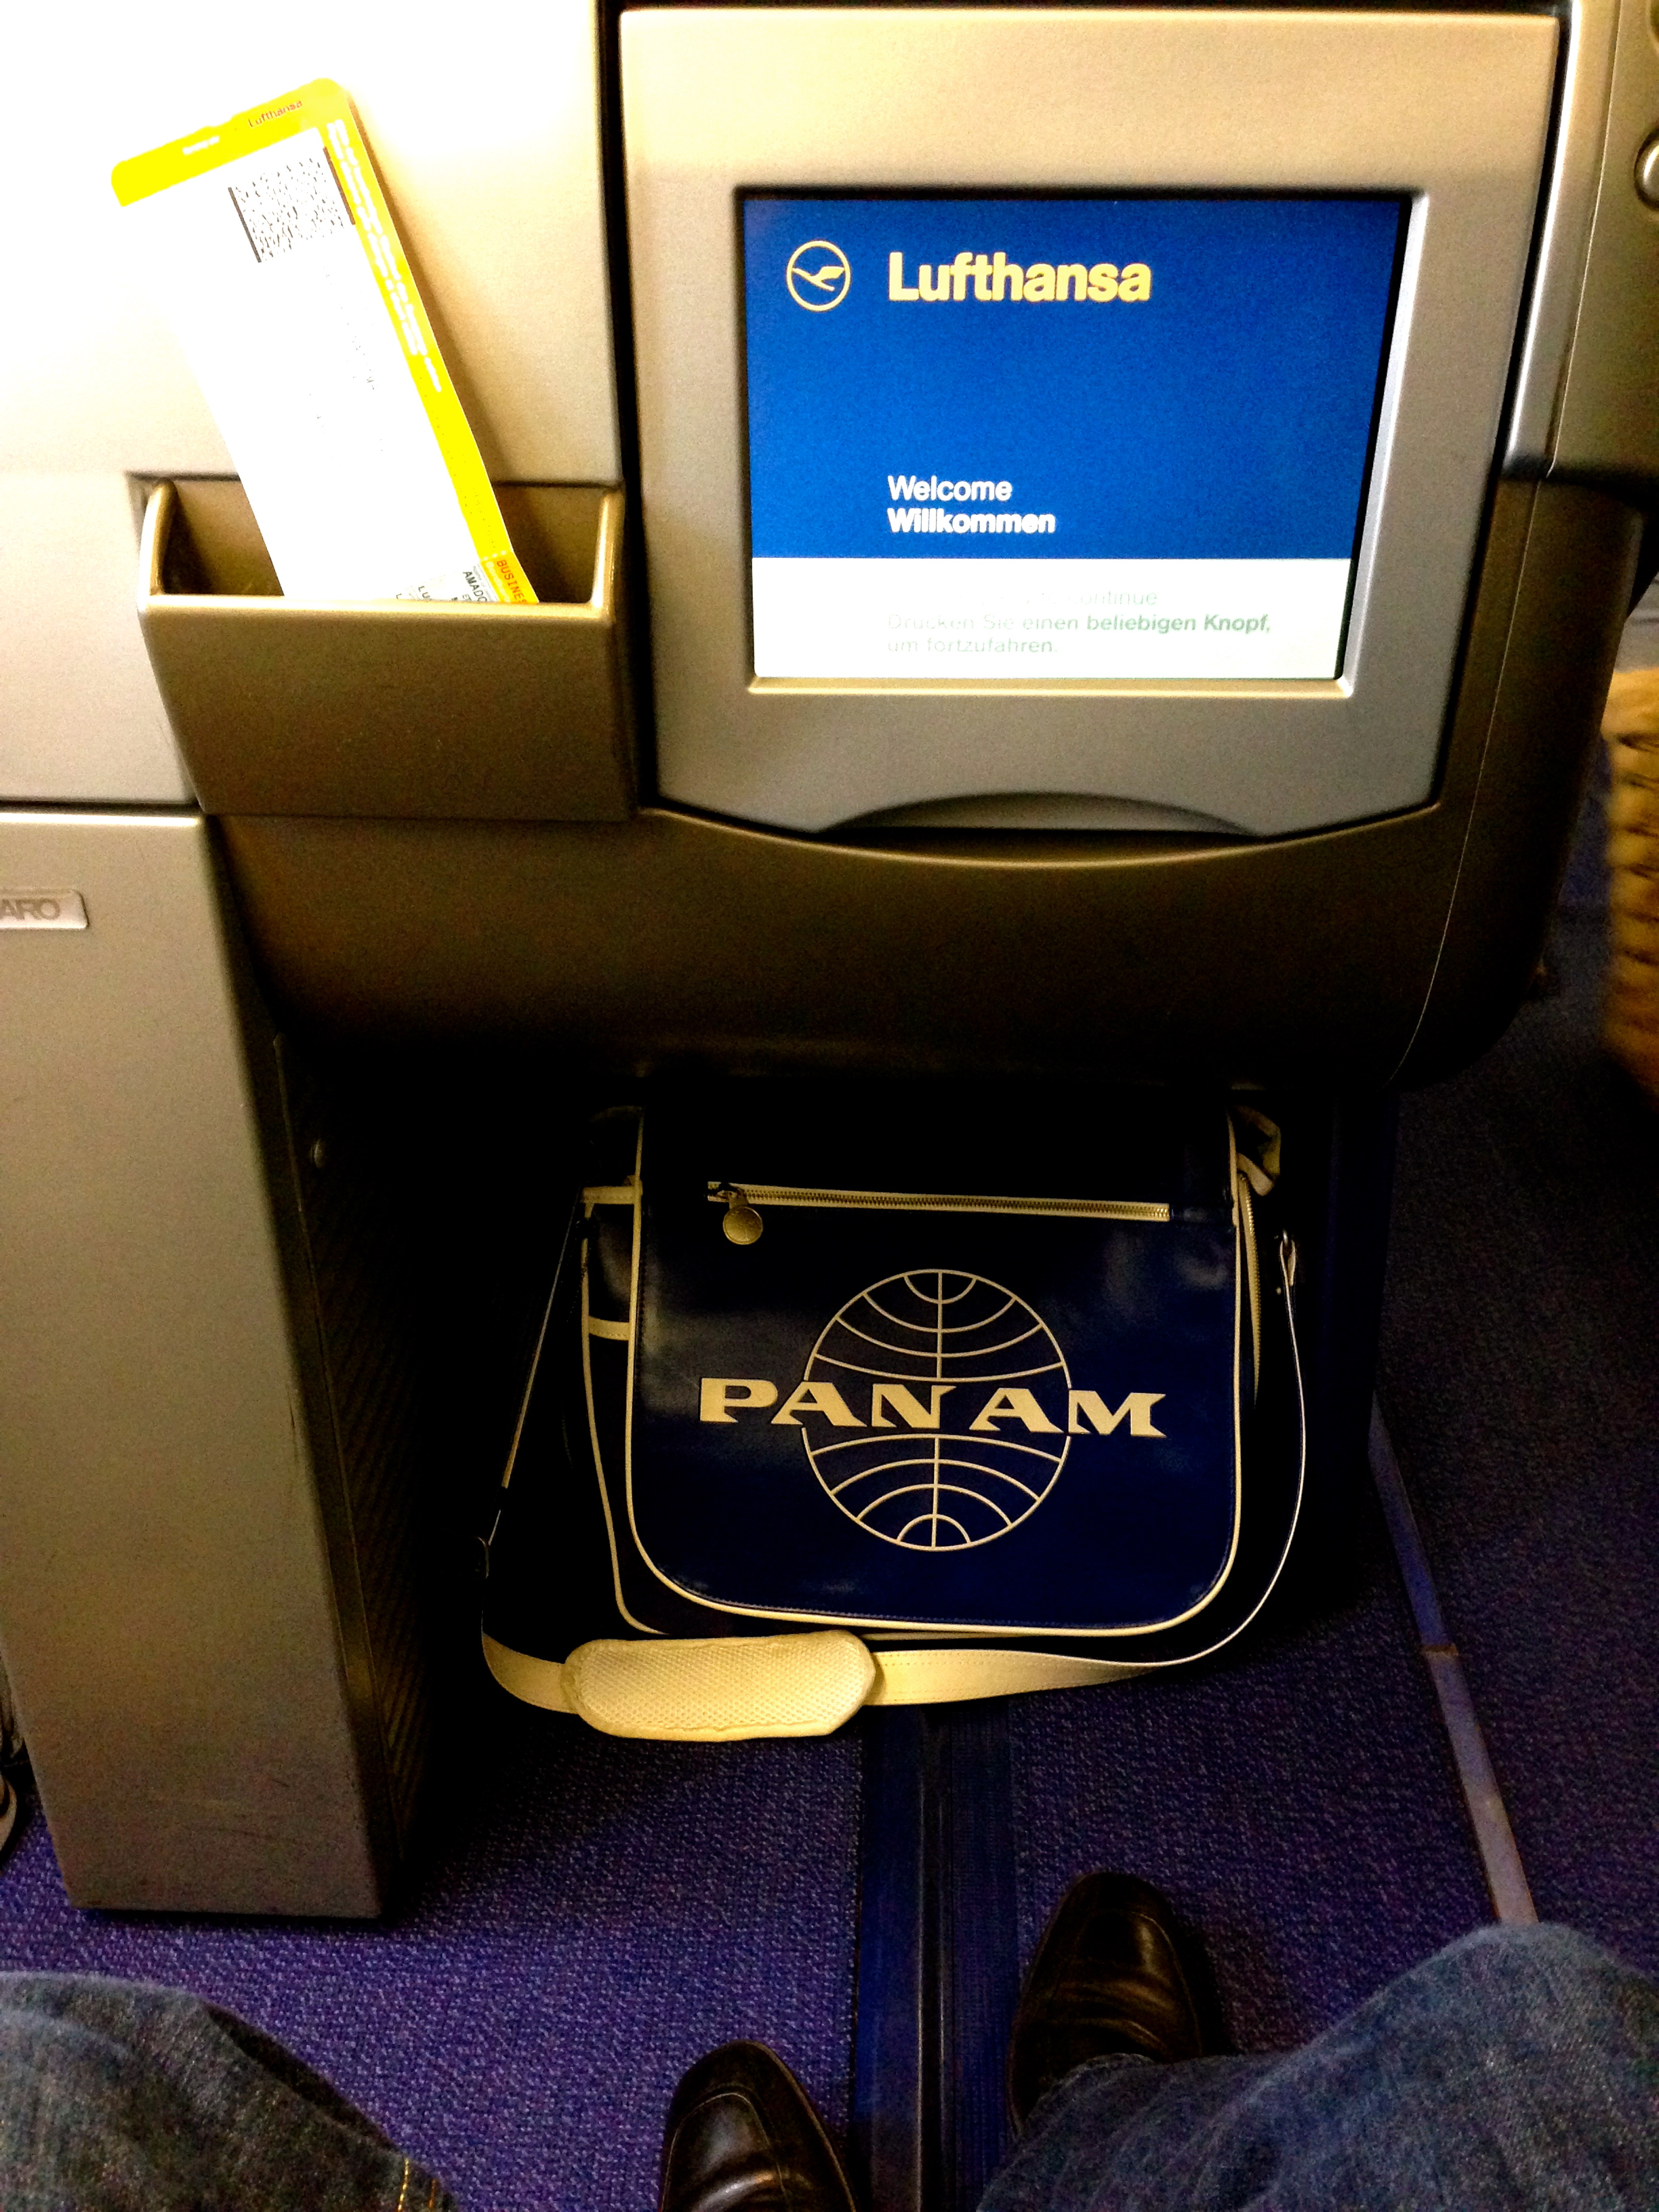 Lufthansa A340-300 Business Class IFE In-Flight Entertainment System Munich to Chicago